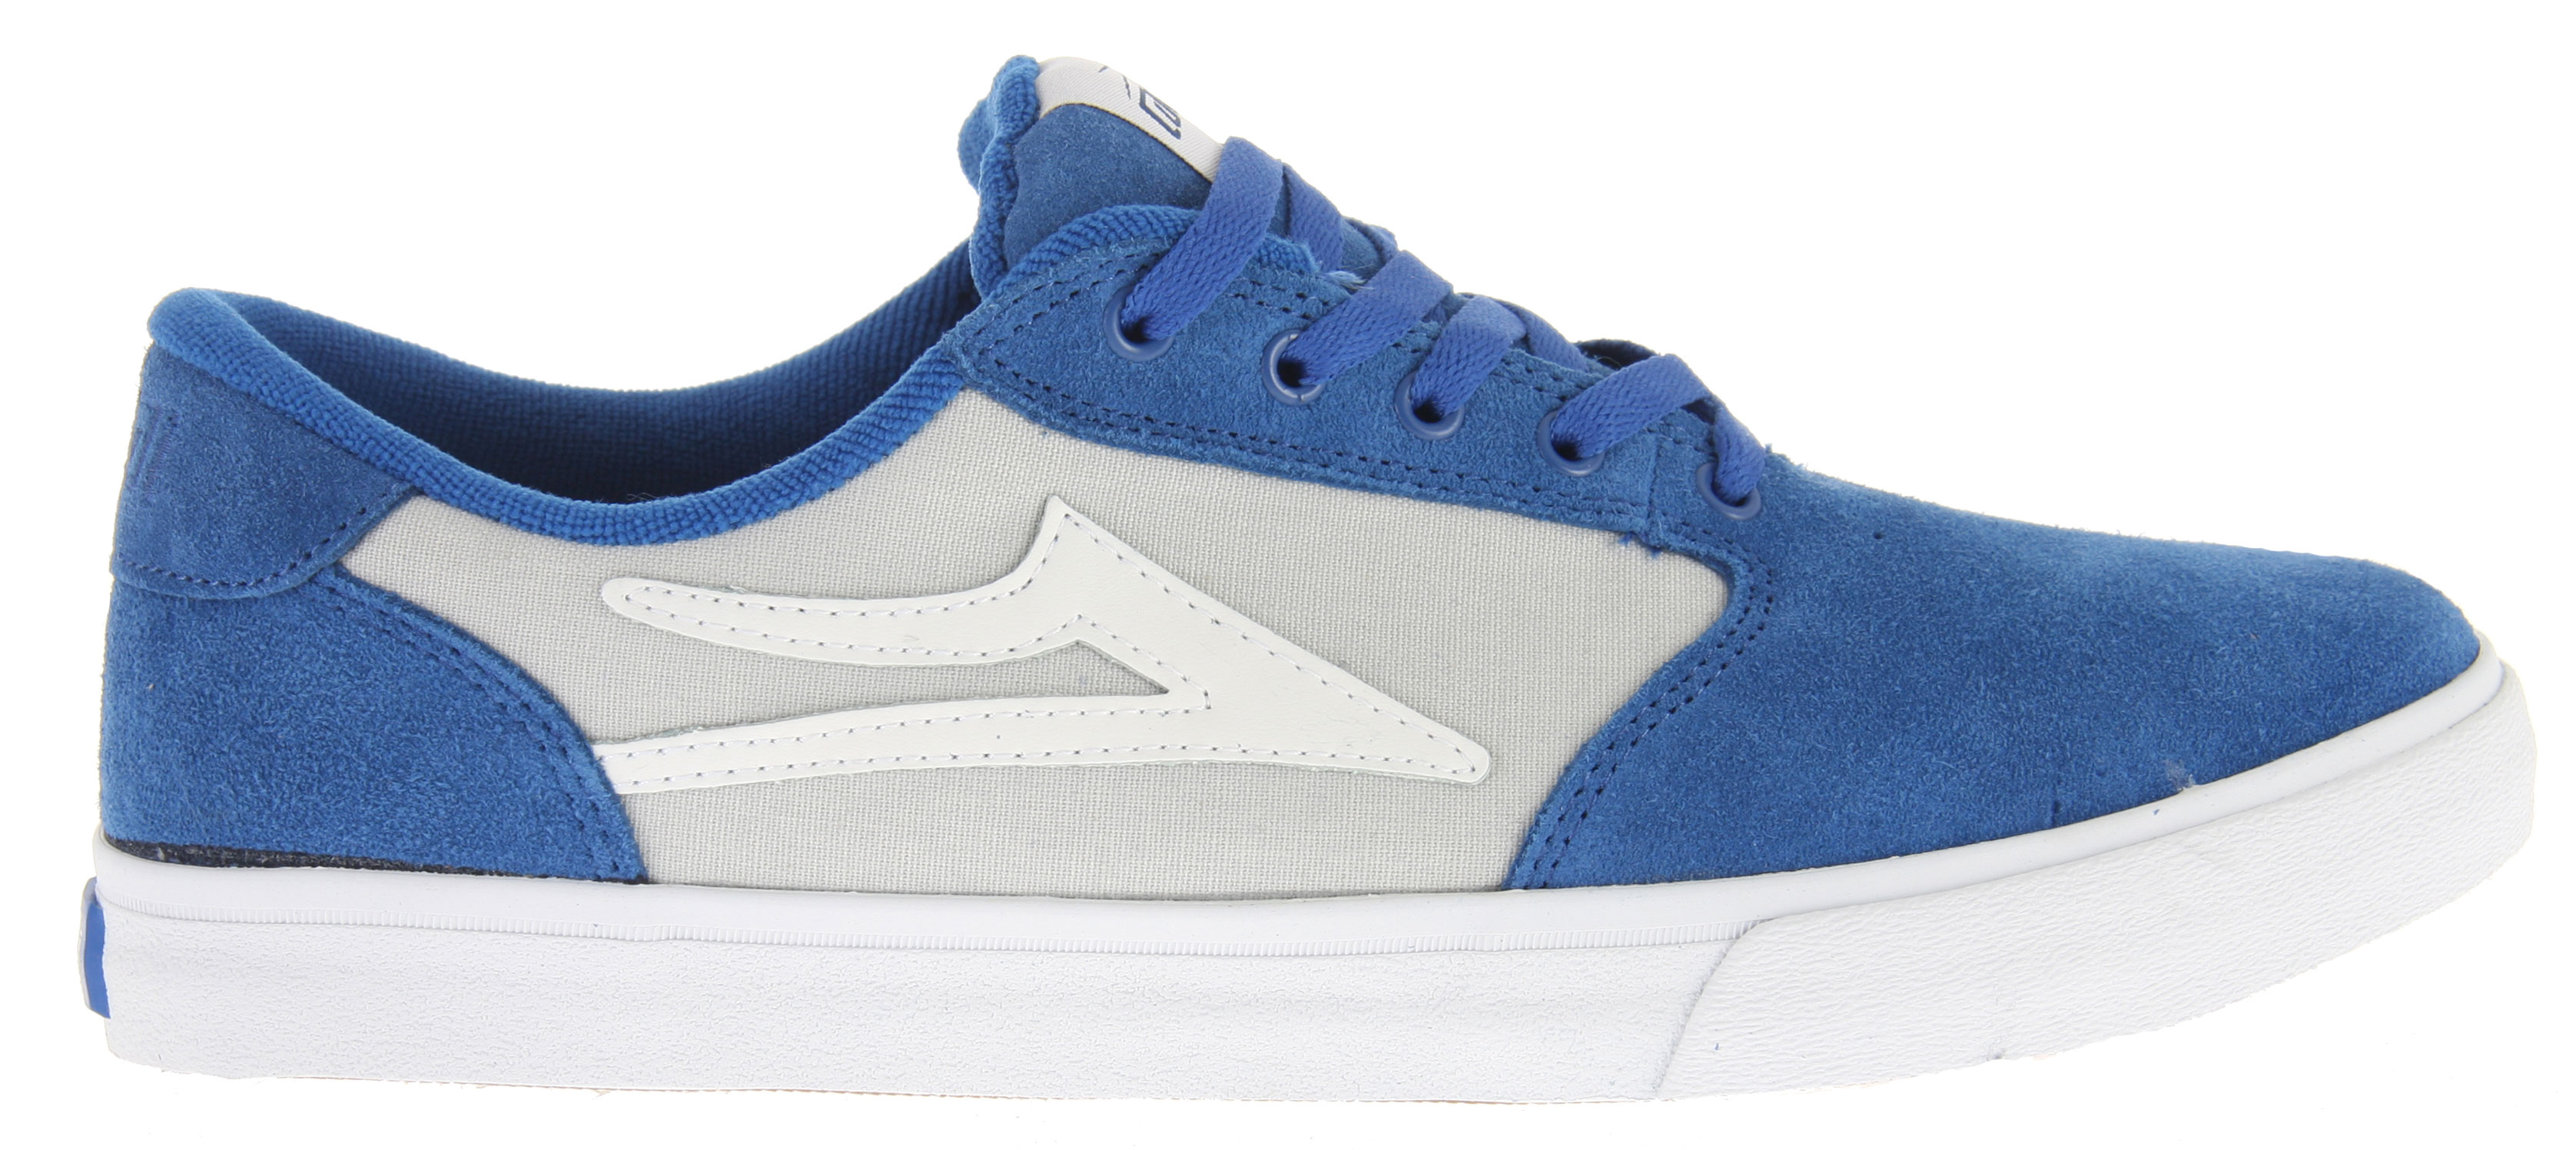 Skateboard Key Features of the Lakai Pico Skate Shoes: Flexible Vulcanized Construction Soft & Tacky Gum Rubber Outsole Durable Suede & Canvas Upper Form-Fitting Upper For Increased Board Feel Full-Length Shock Absorbing Insole - $55.95